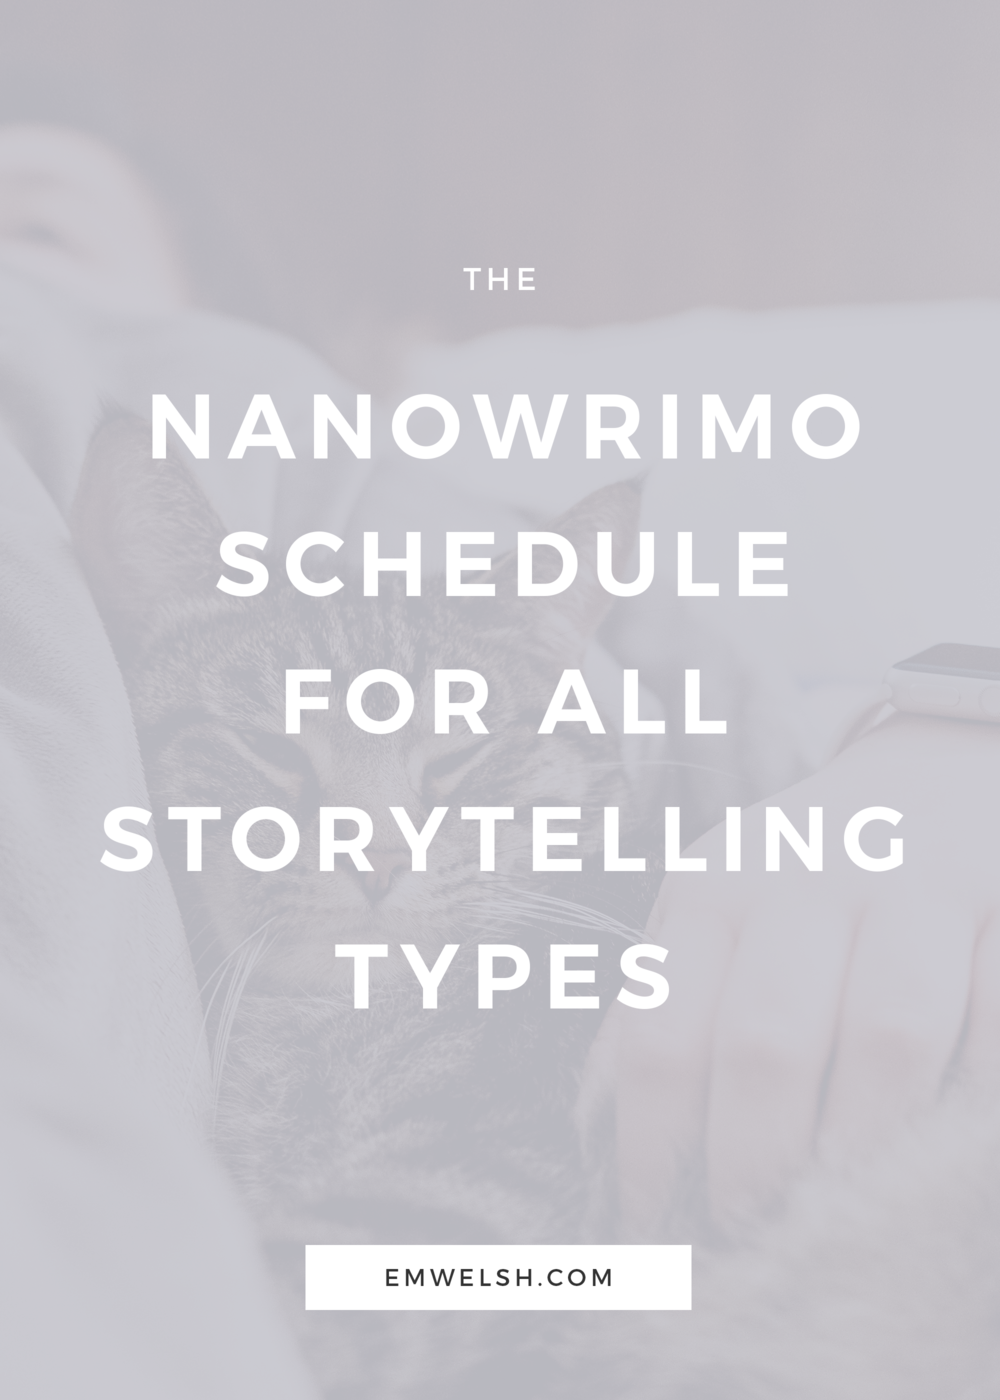 Nanowrimo-schedule-storytelling.png